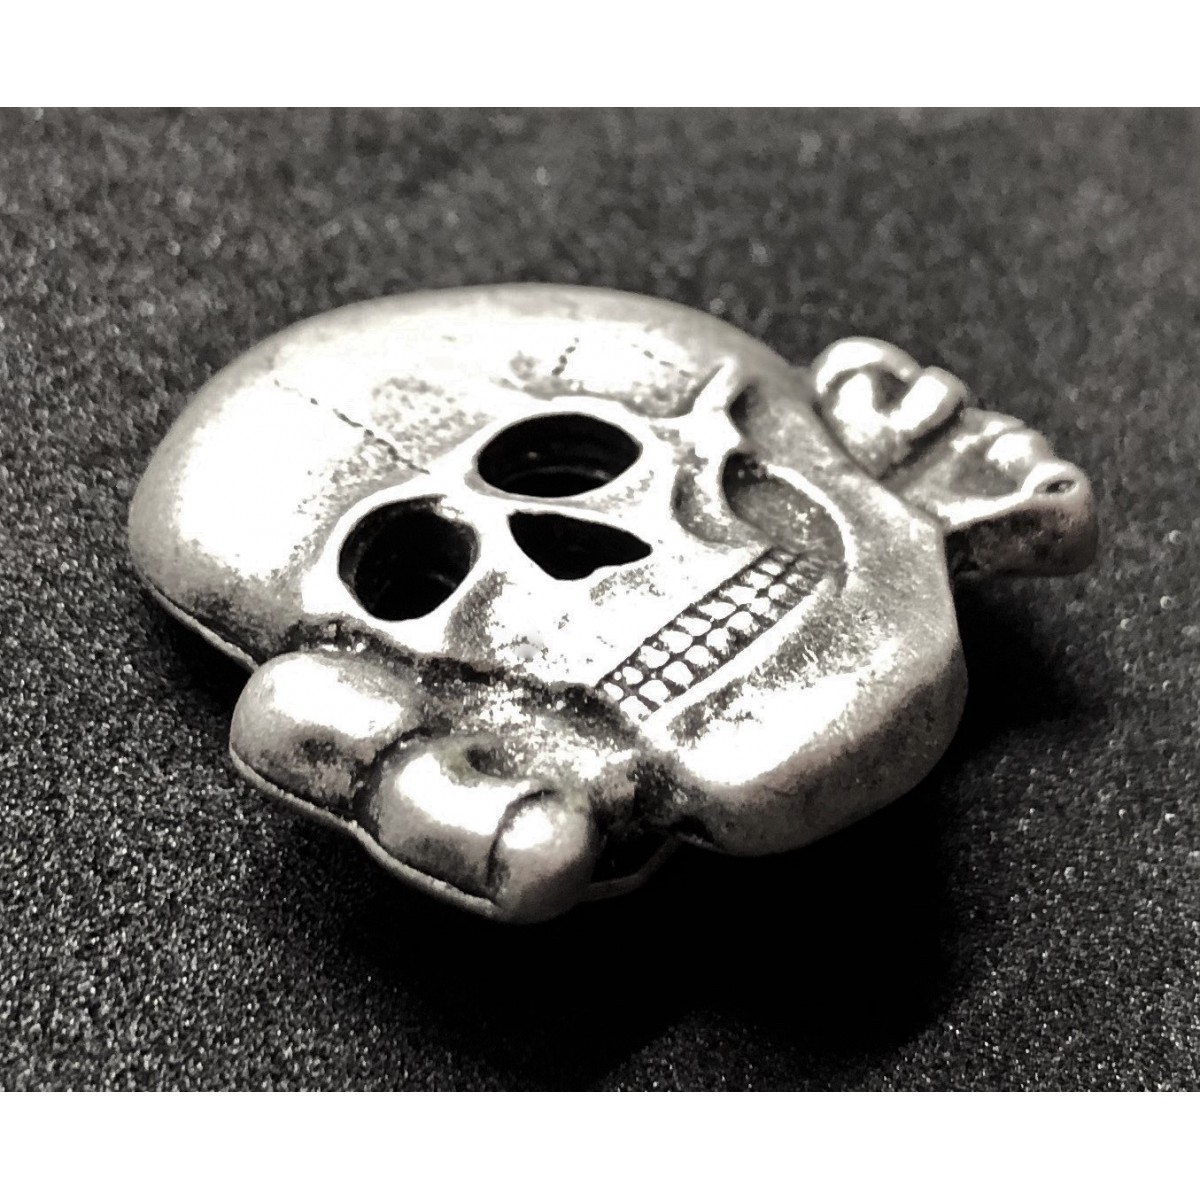 Repro SS Totenkopf Skull Badge For Hat ww2 for reenactment